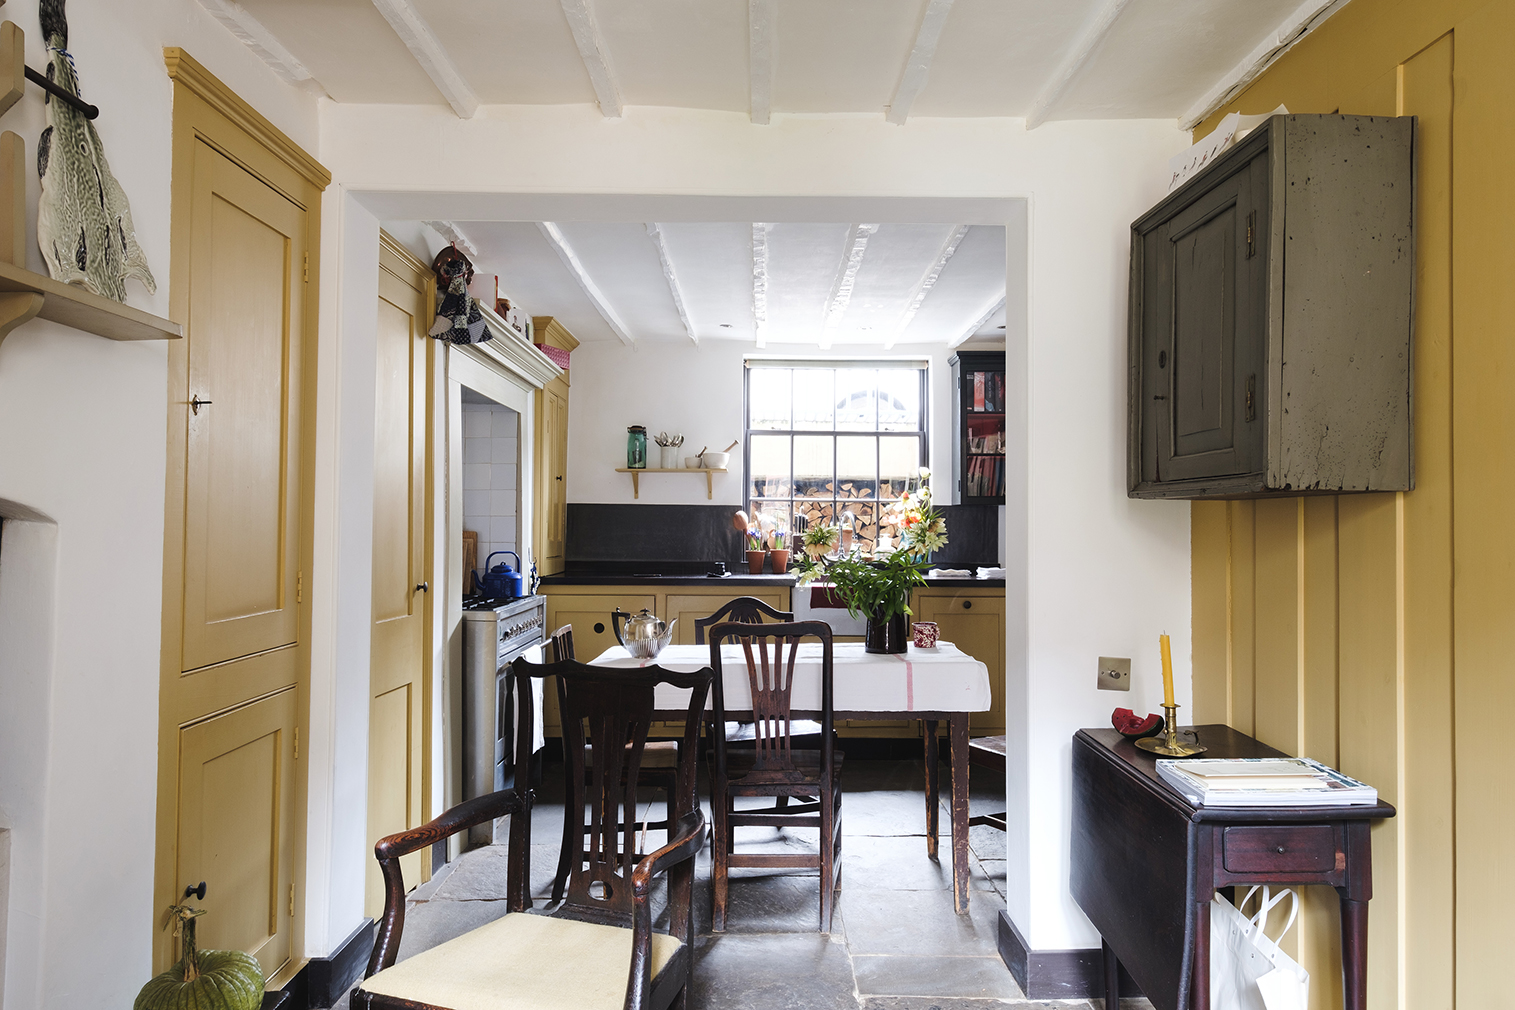 View of kitchen with ochre doors and paneling, white walls, and slightly exposed beams on the ceiling.